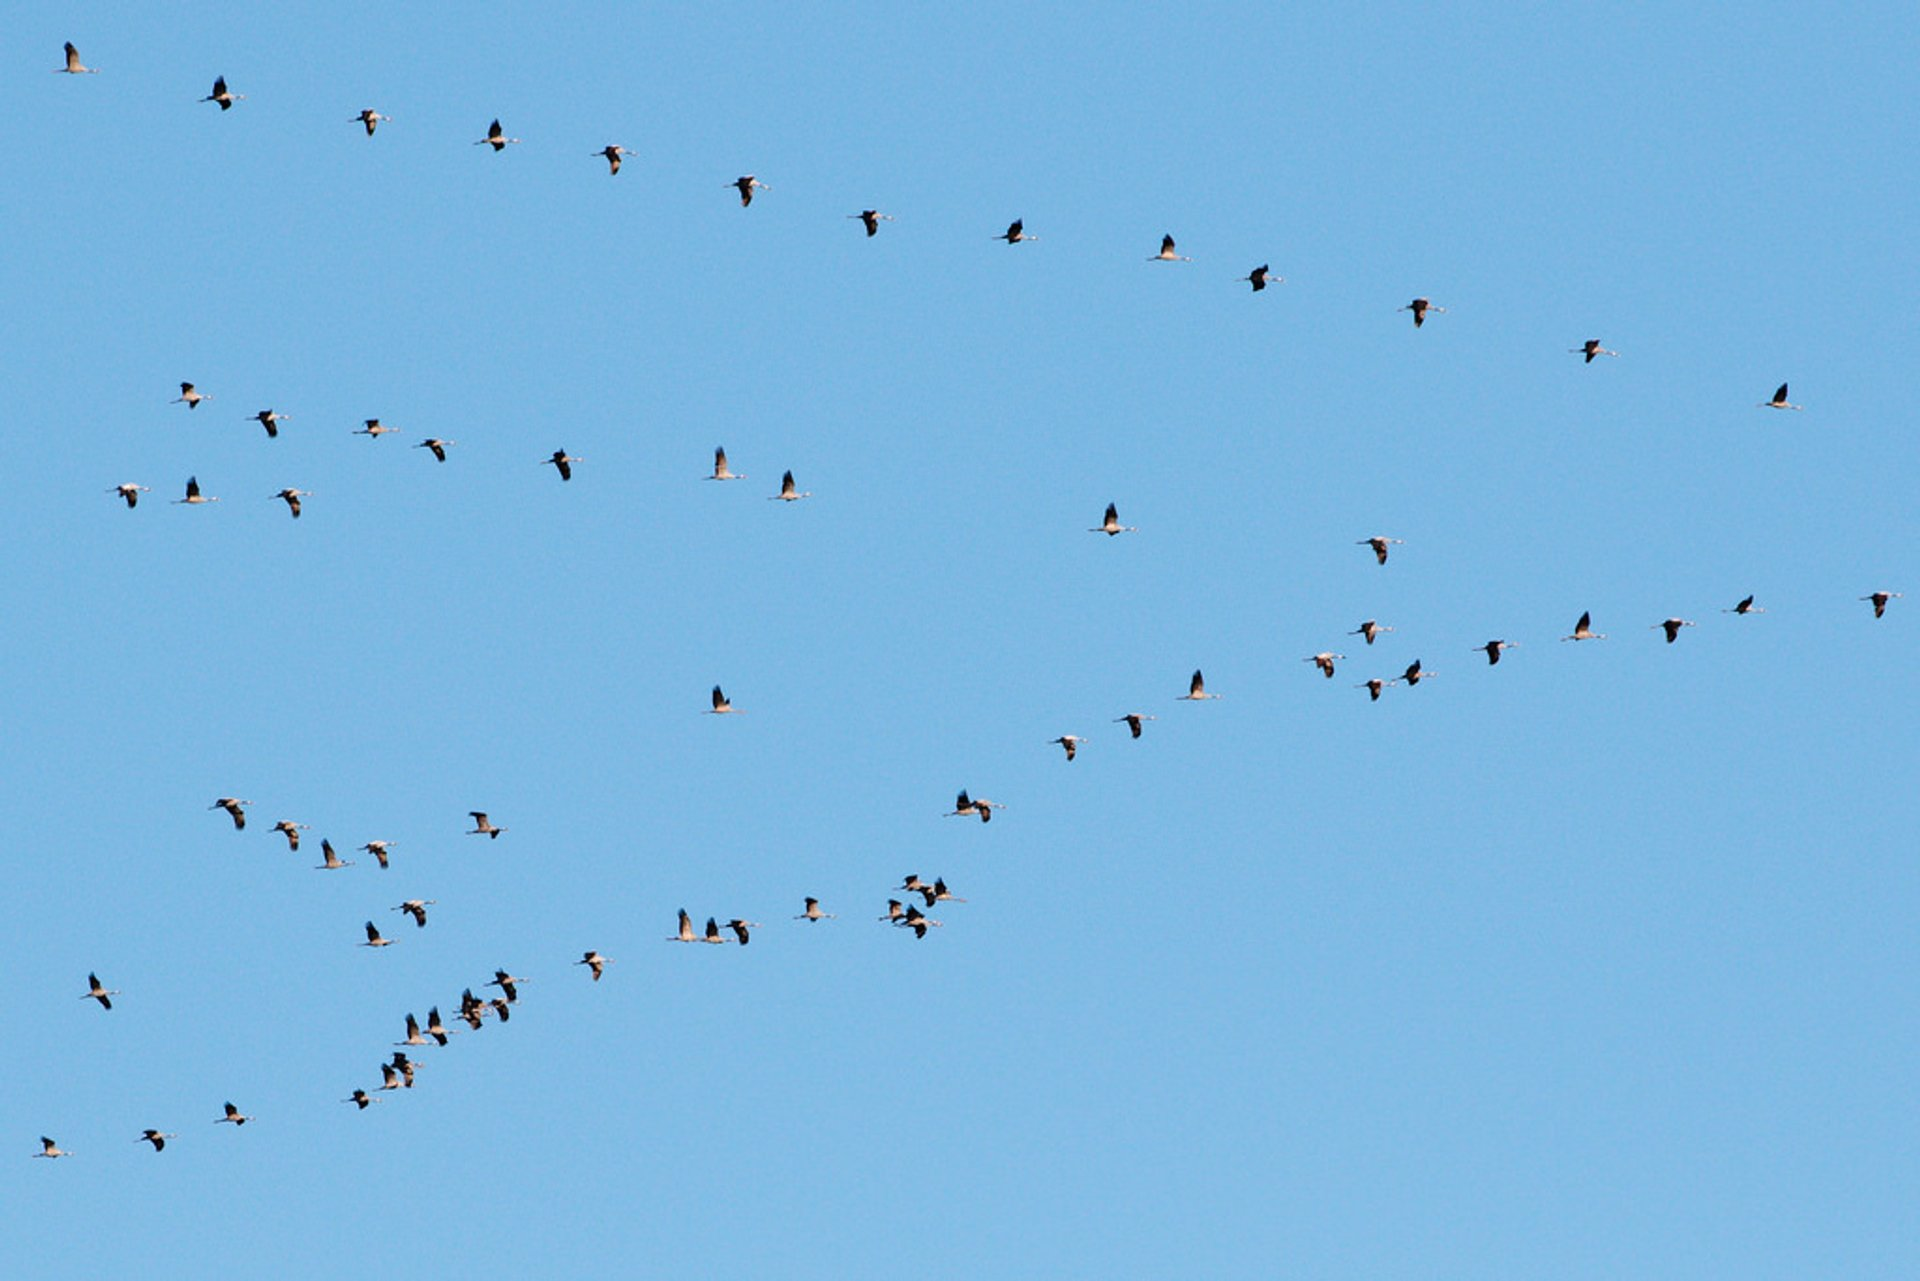 Best time for Migrating Birds at Falsterbo in Sweden